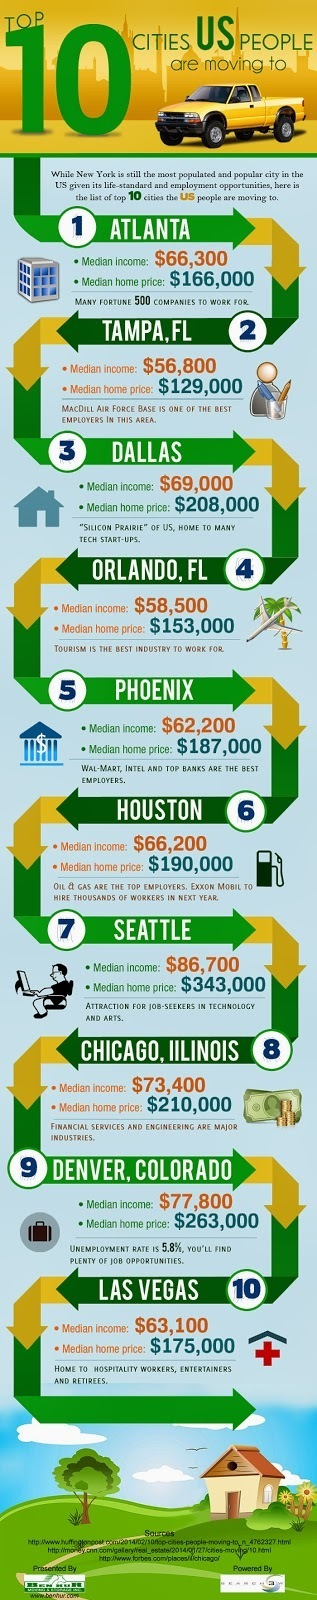 Top 10 Cities US People are Moving t | benhur mover | Scoop.it